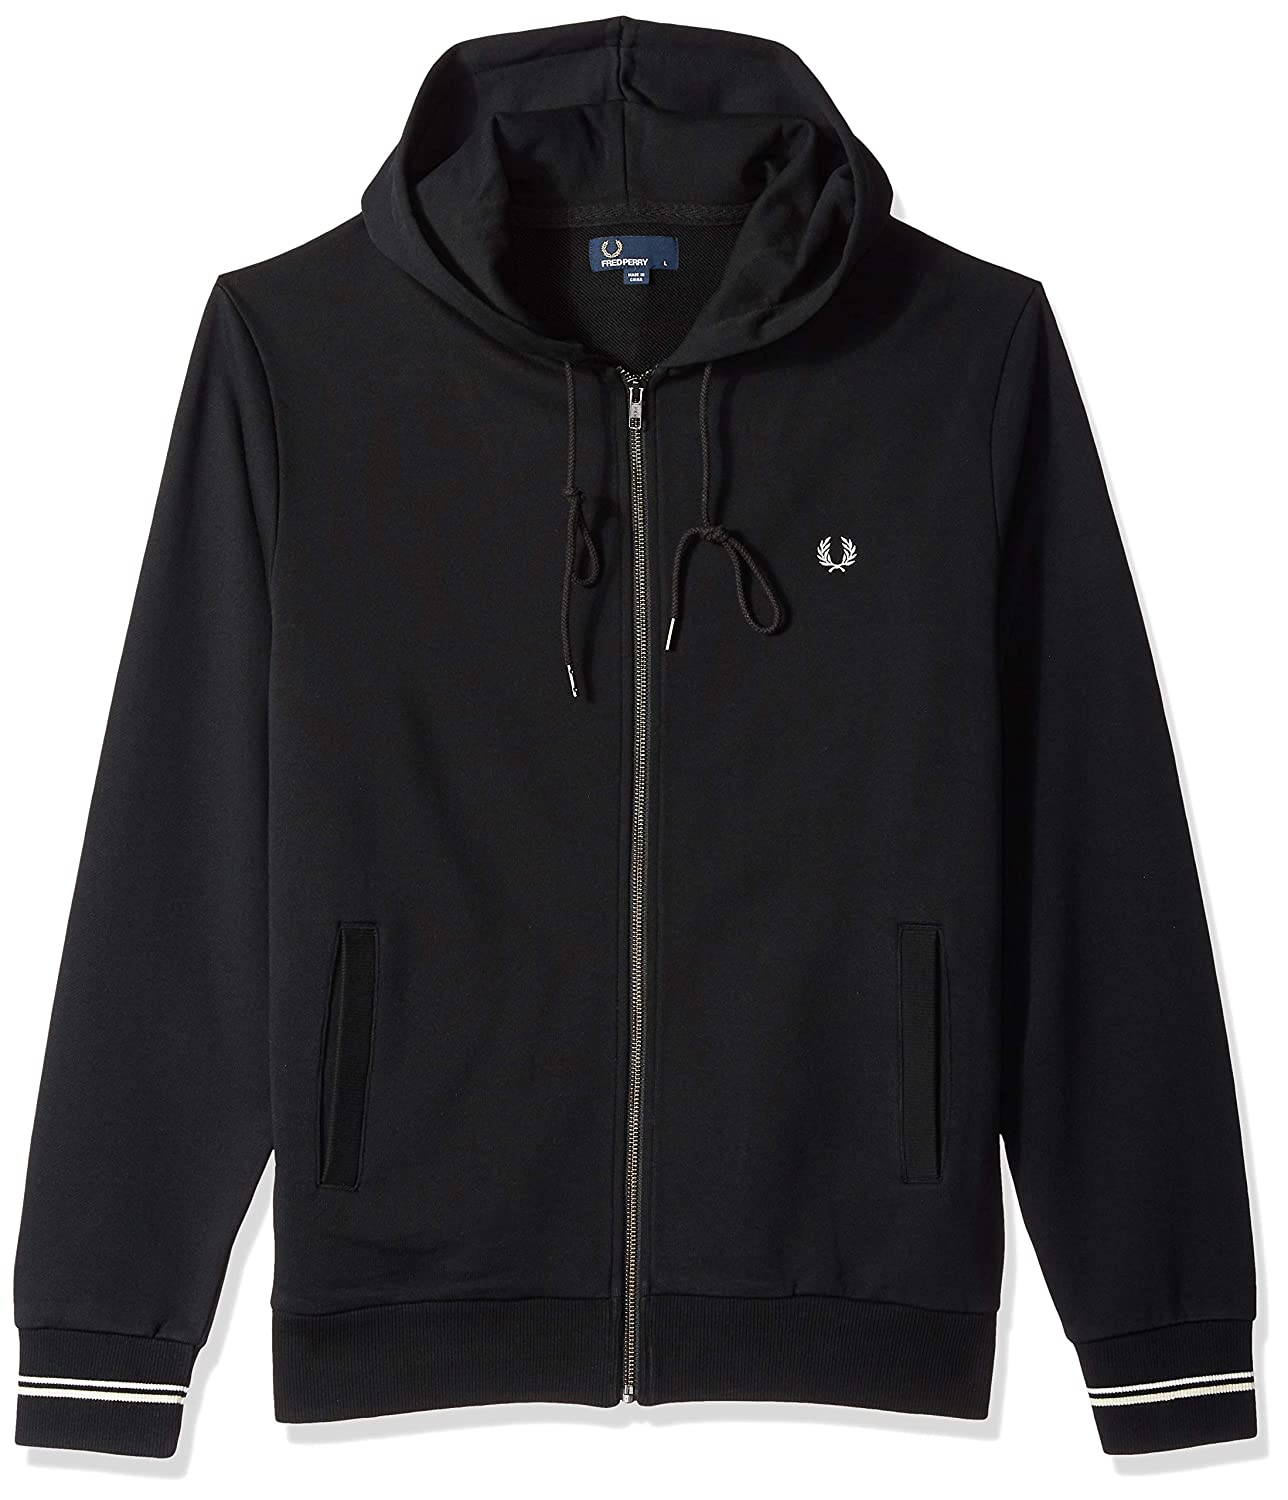 Giacca sportiva Fred Perry Hooded Sweatshirt